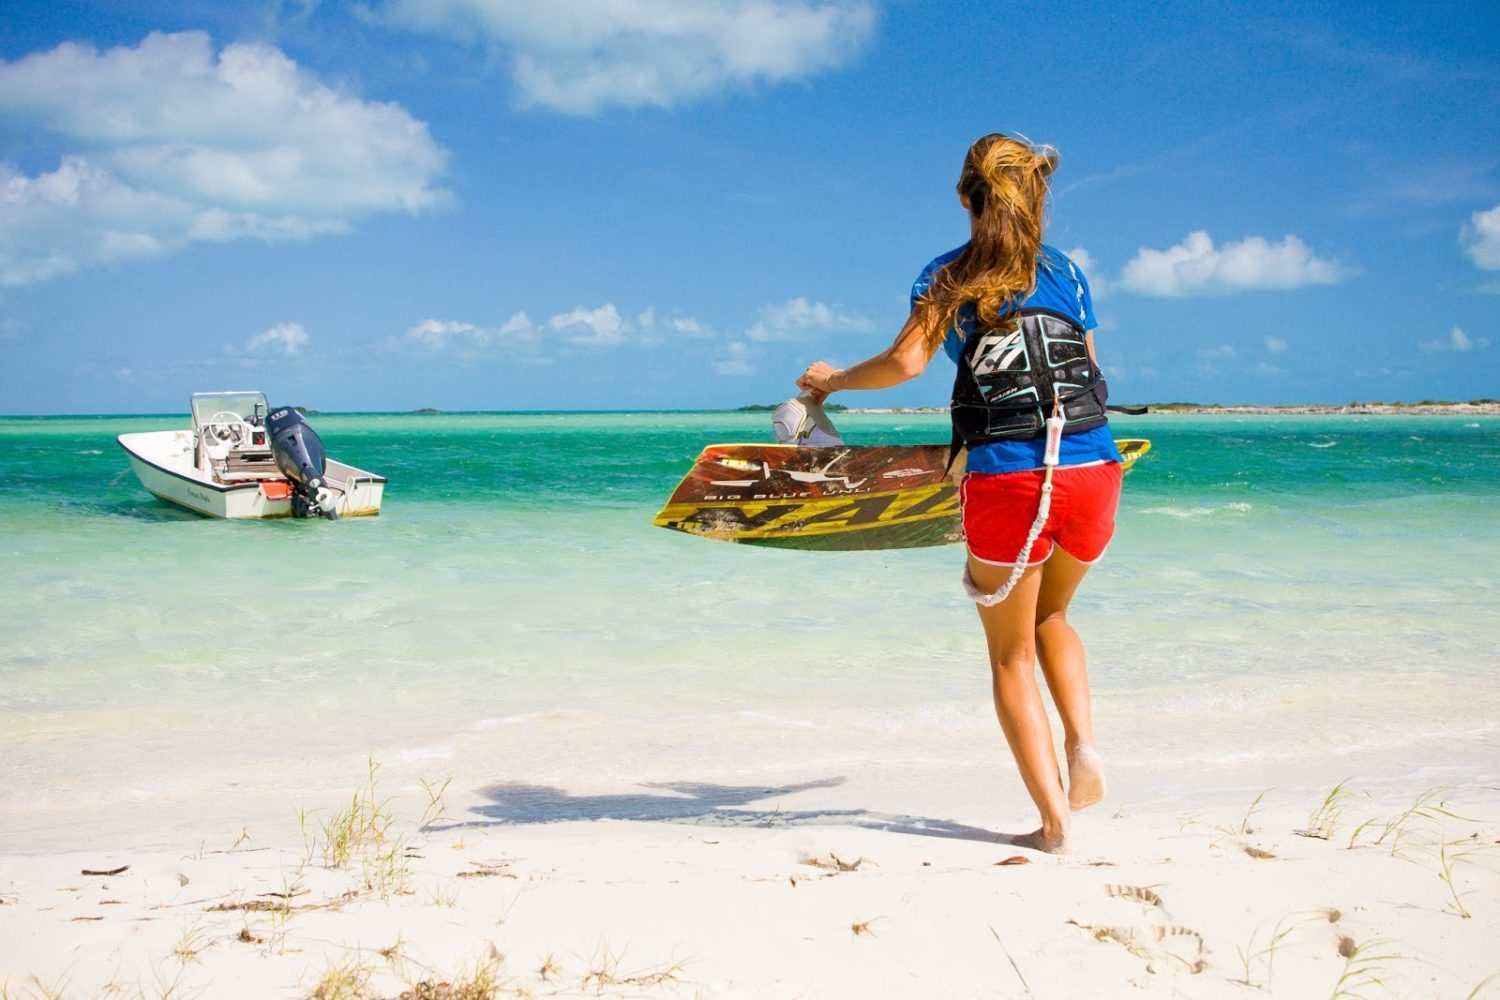 Kite surfing on Providenciales